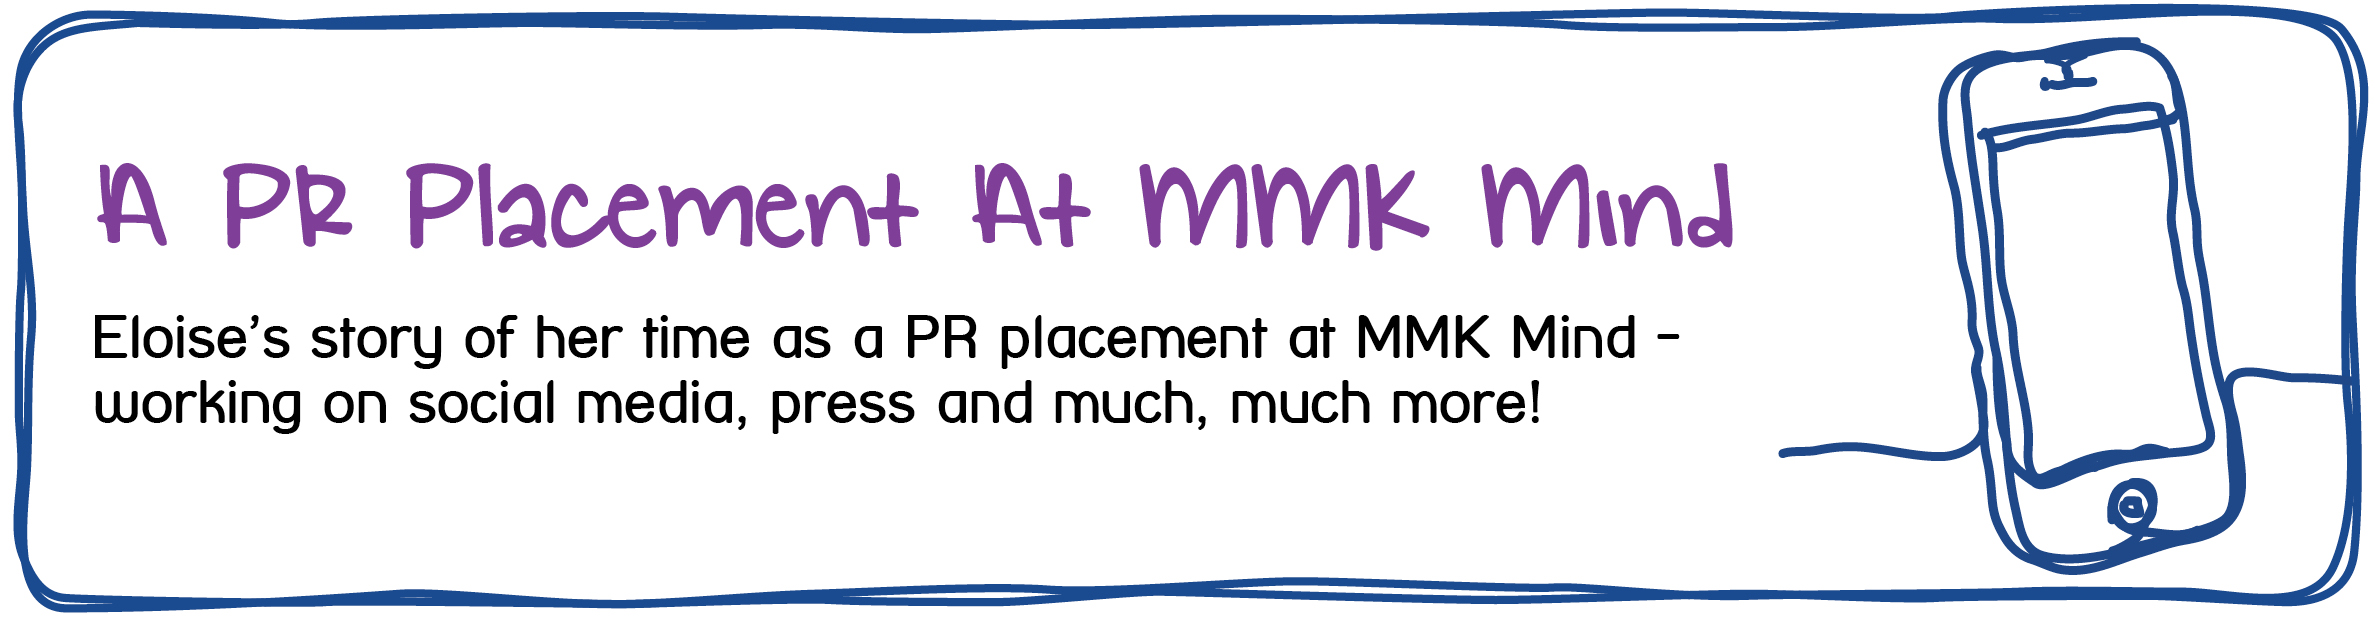 A Student Placement At MMK Mind - A Story of a student's time working on PR at MMK Mind.